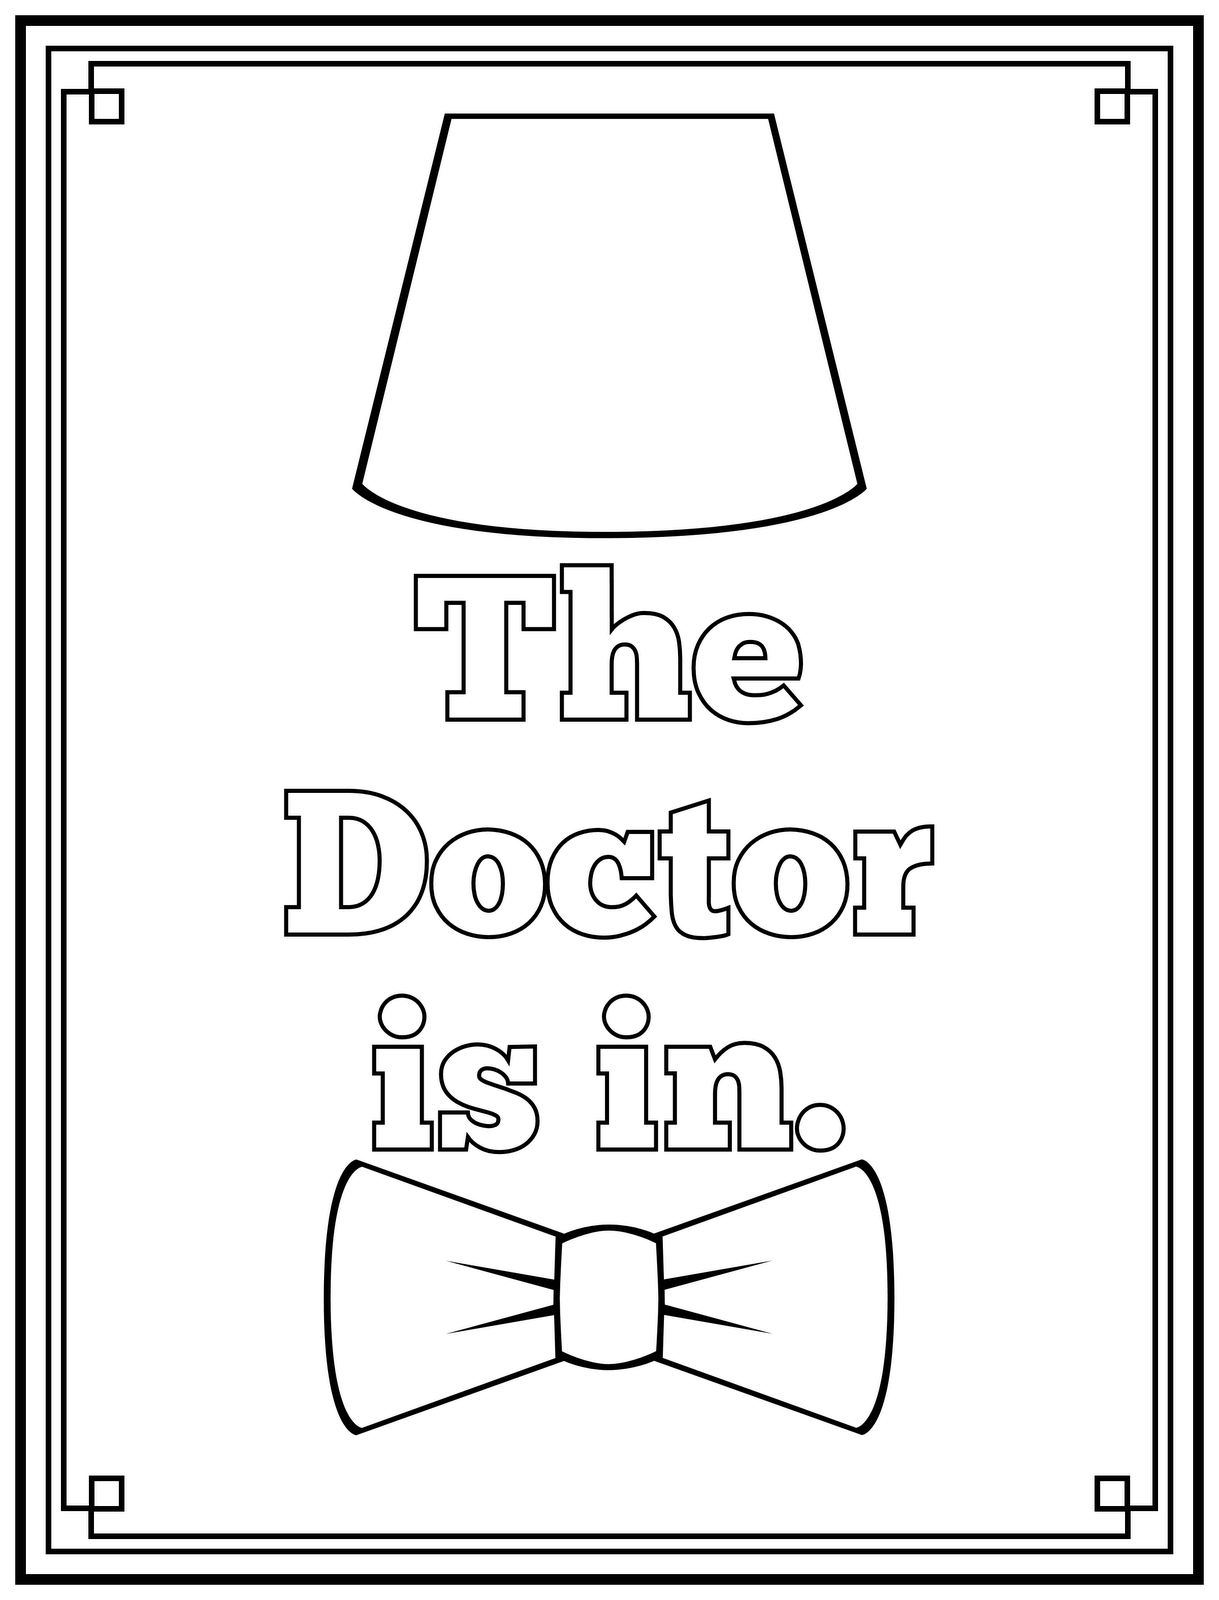 dr who coloring pages | dont eat the paste: the doctor is in ... - Kitty Doctor Coloring Pages